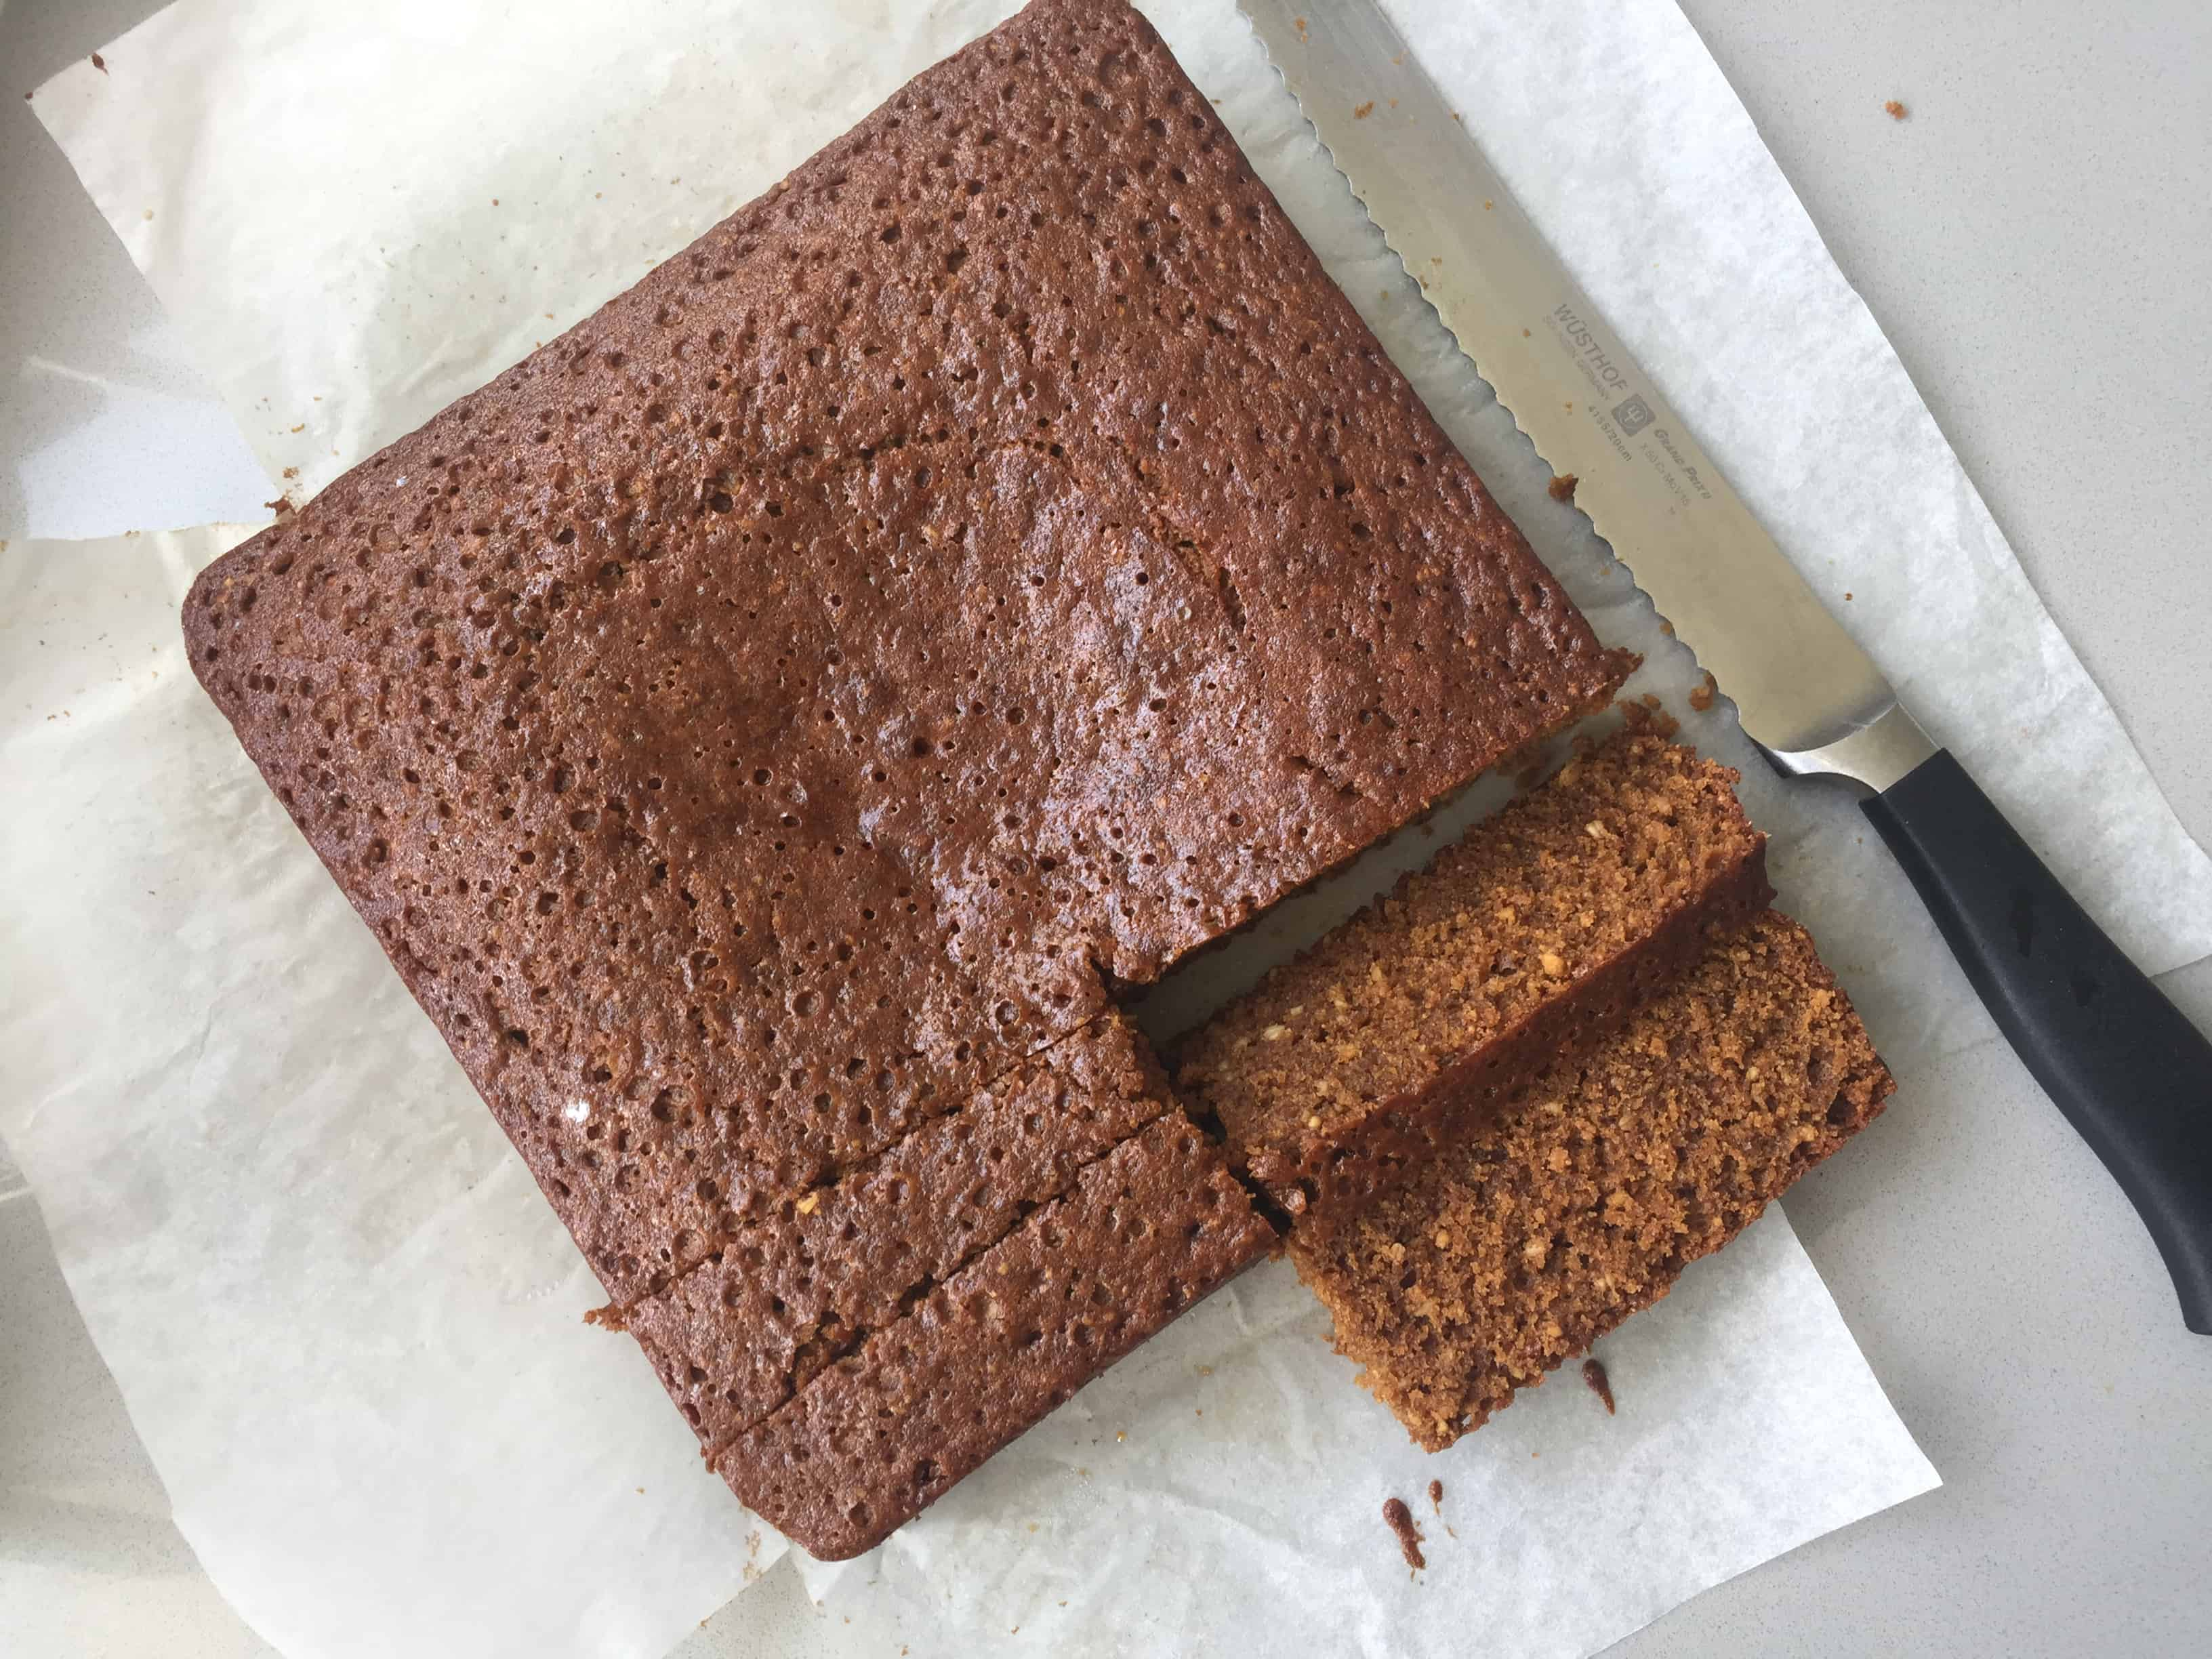 Yorkshire Parkin sliced